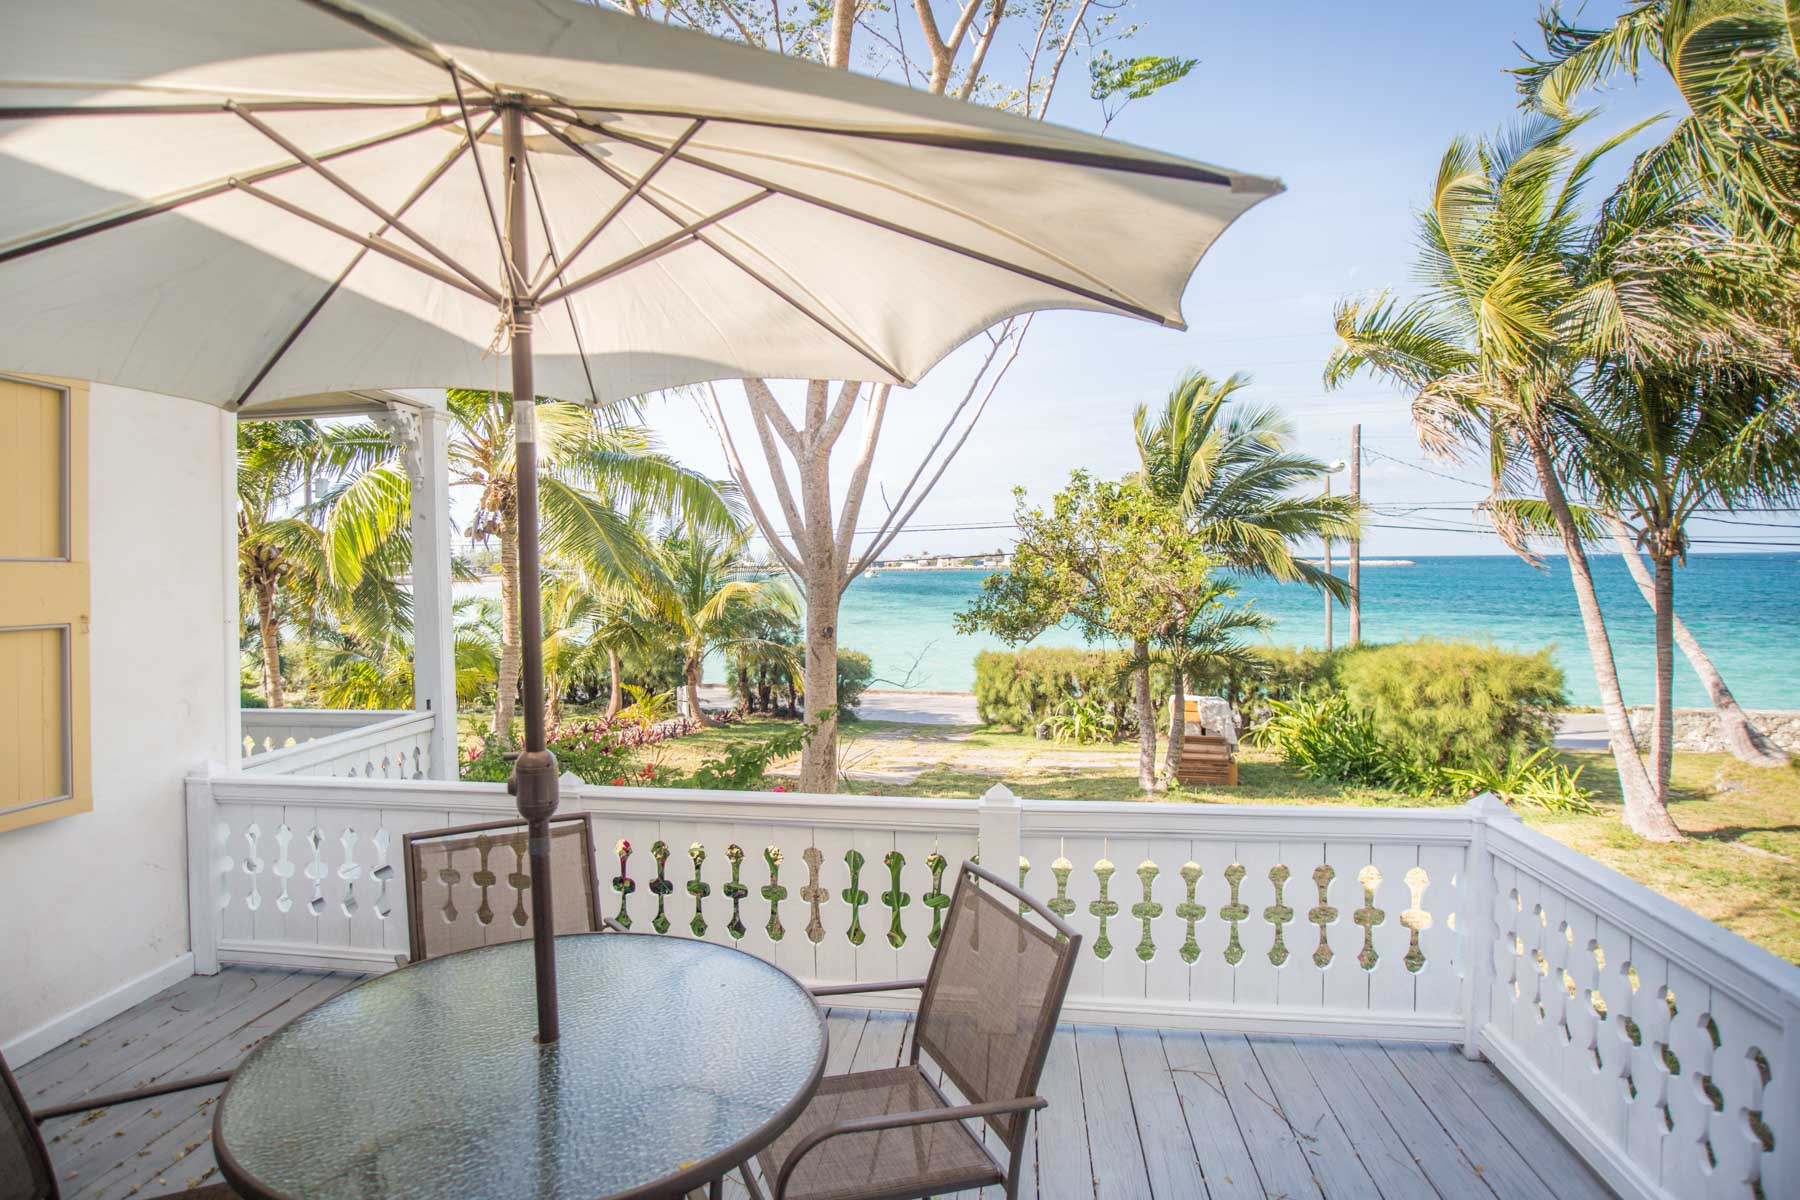 Additional photo for property listing at A Very Rare and Special Home / MLS32815 Governors Harbour, Eleuthera, Bahamas